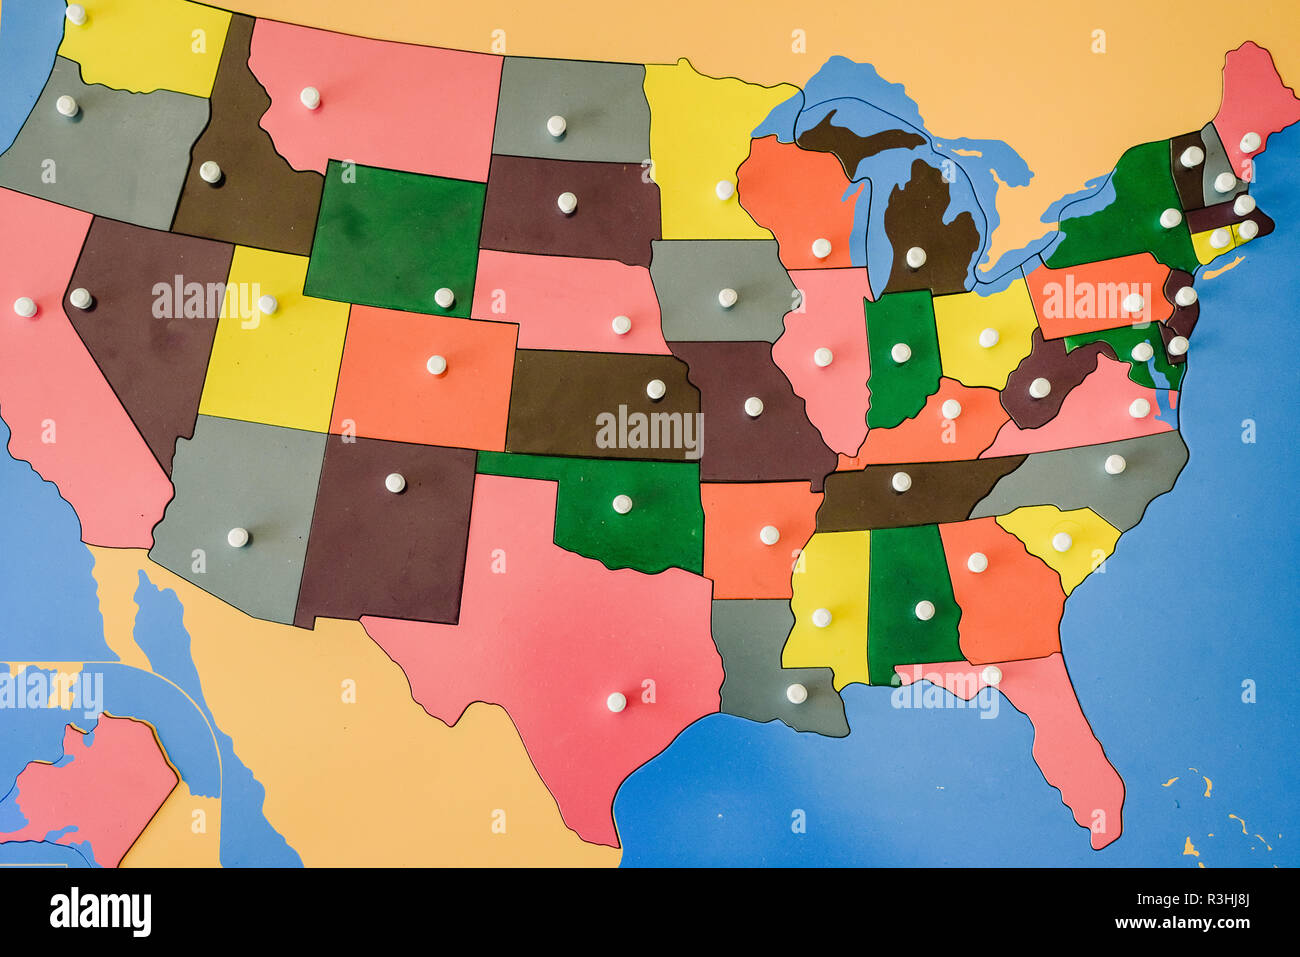 Image of: Puzzle With Map Of The States Of The United States Of America In A Montessori Classroom Stock Photo Alamy